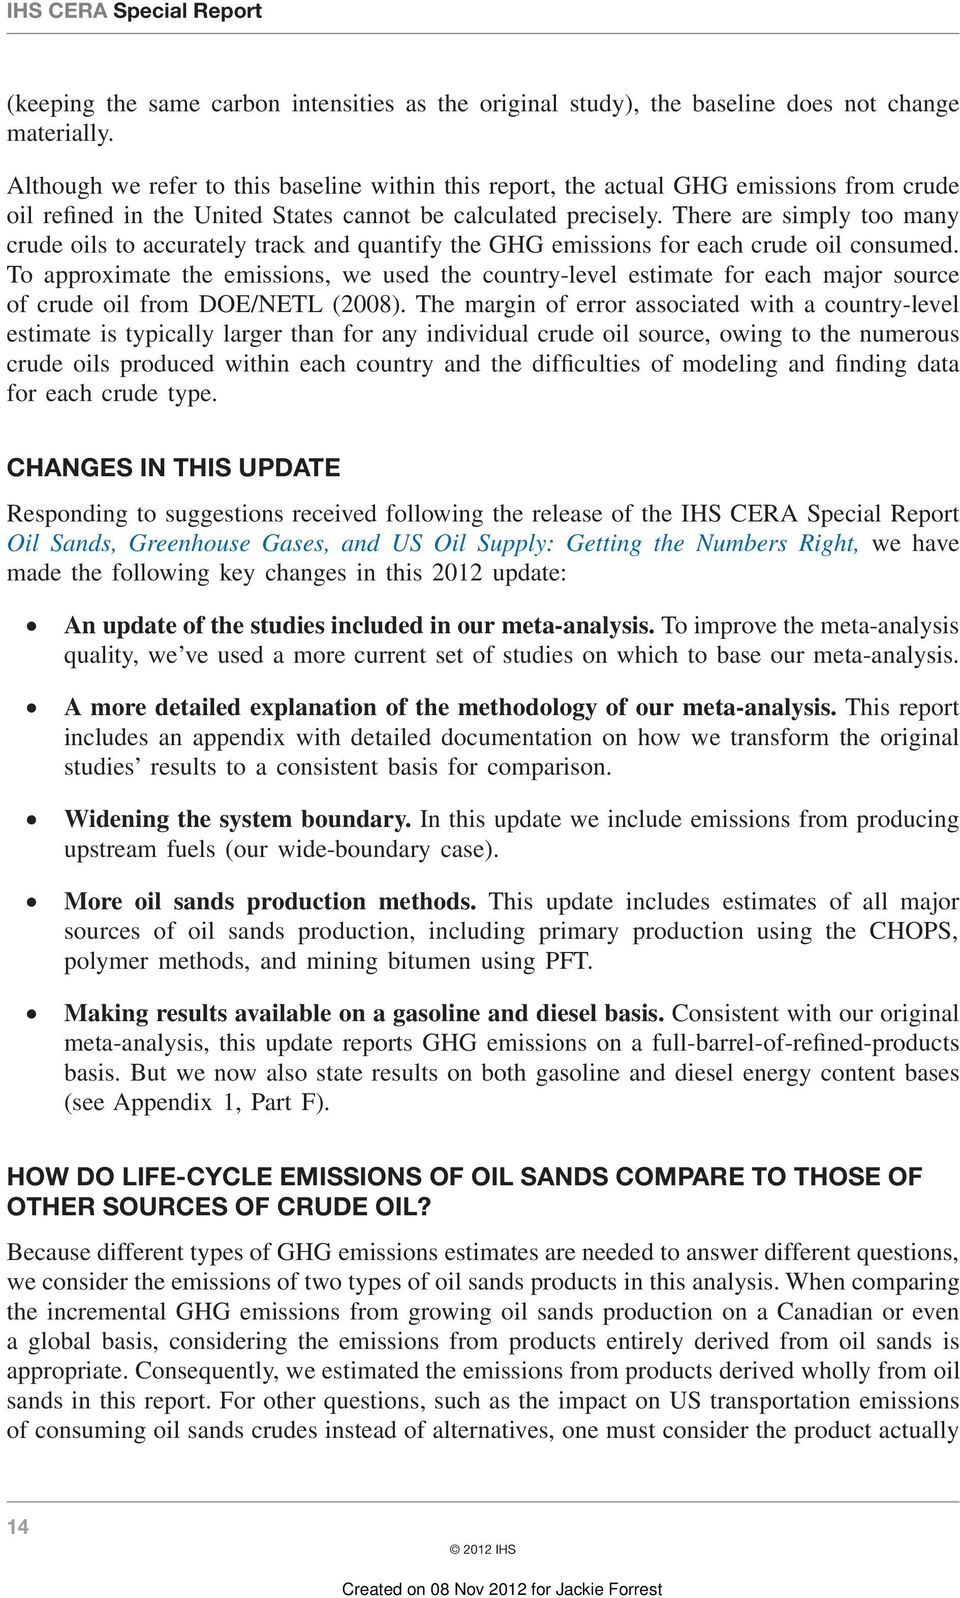 There are simply too many crude oils to accurately track and quantify the GHG emissions for each crude oil consumed.